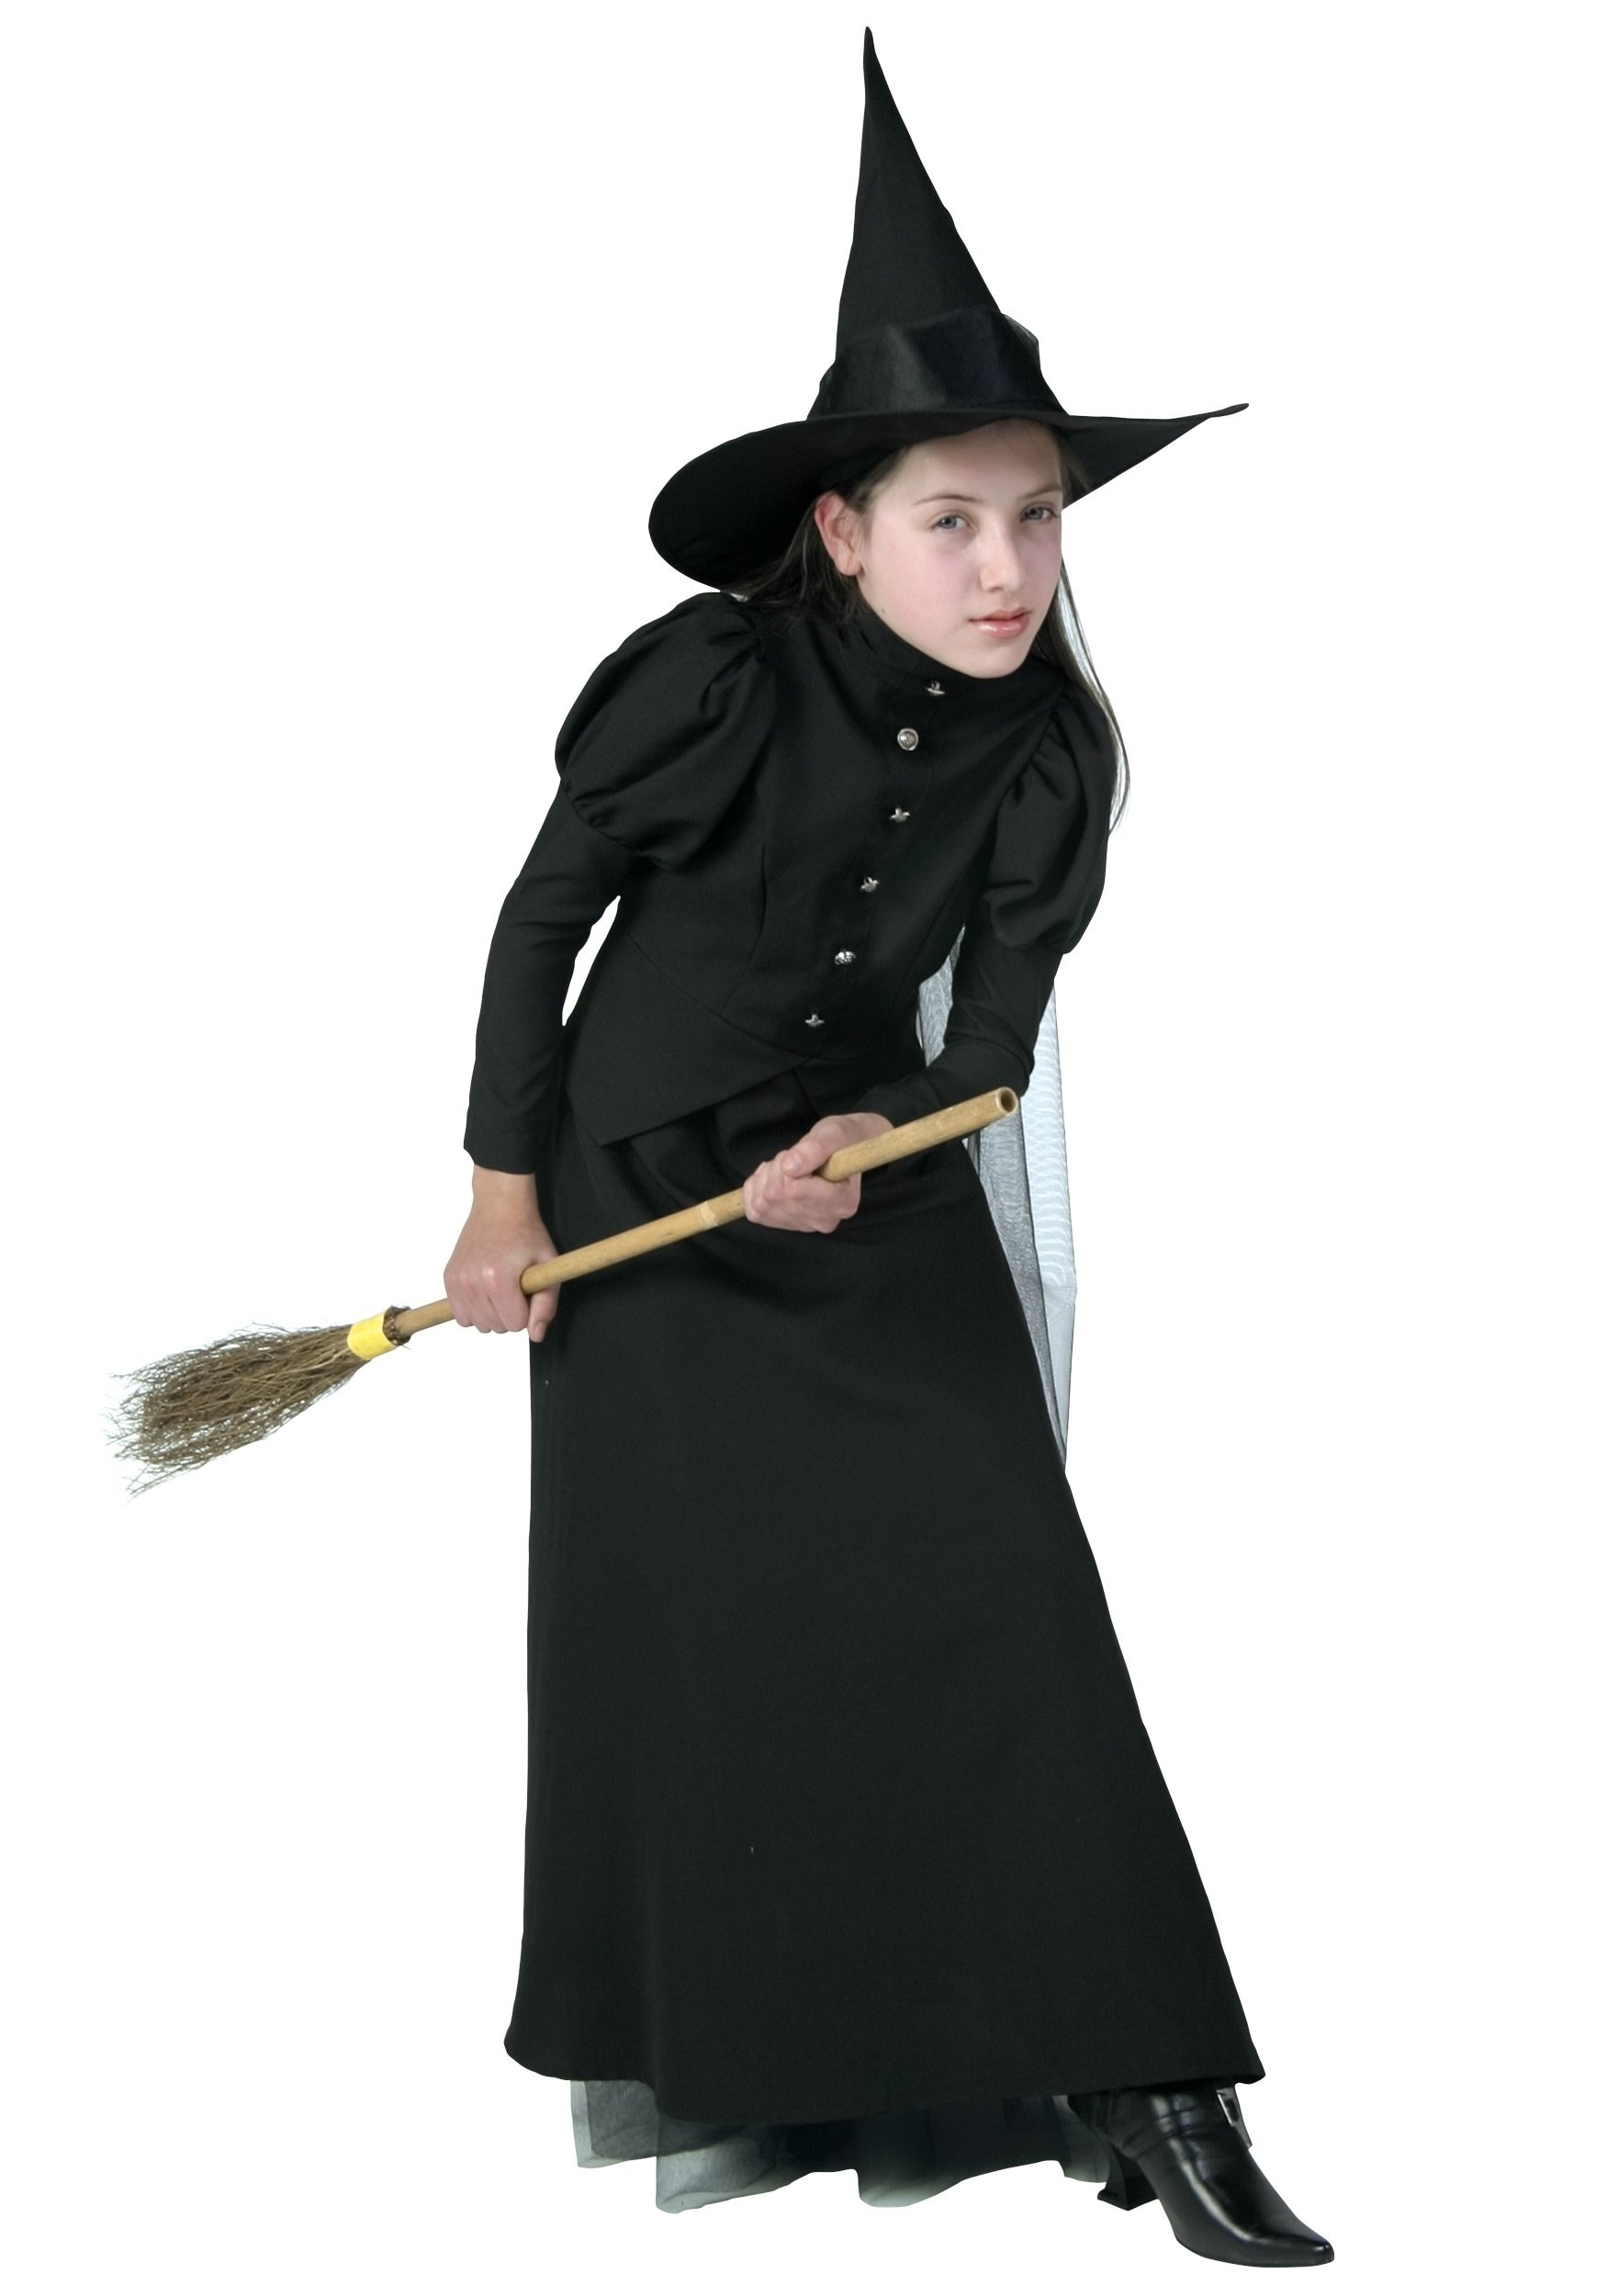 10 Wonderful Witch Costume Ideas For Women deluxe child witch costume 2020